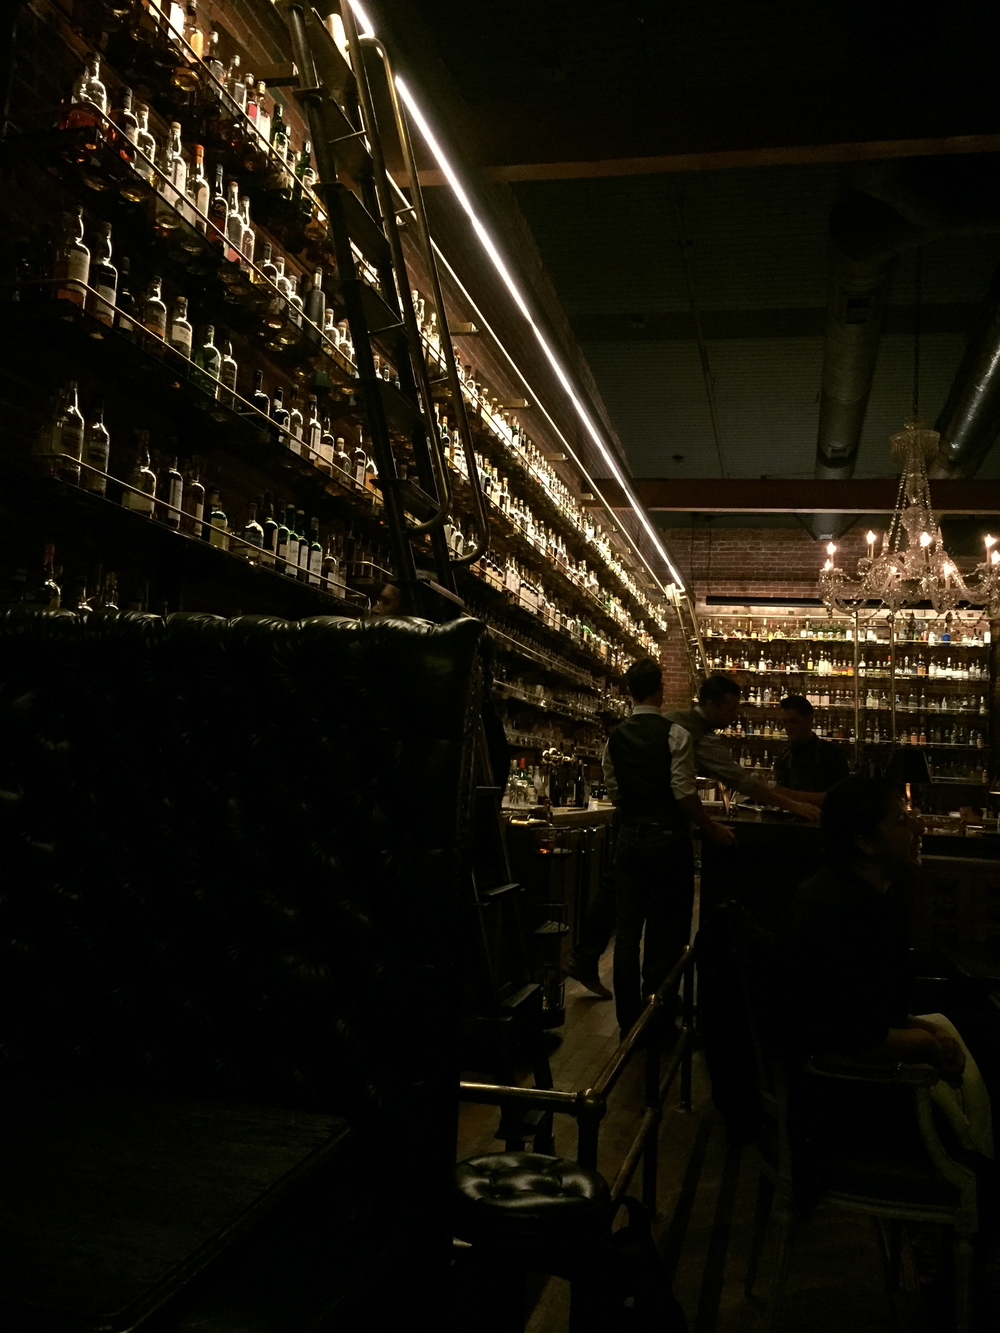 Got some study time in at the Multnomah Whiskey Library. A very extensive collection!